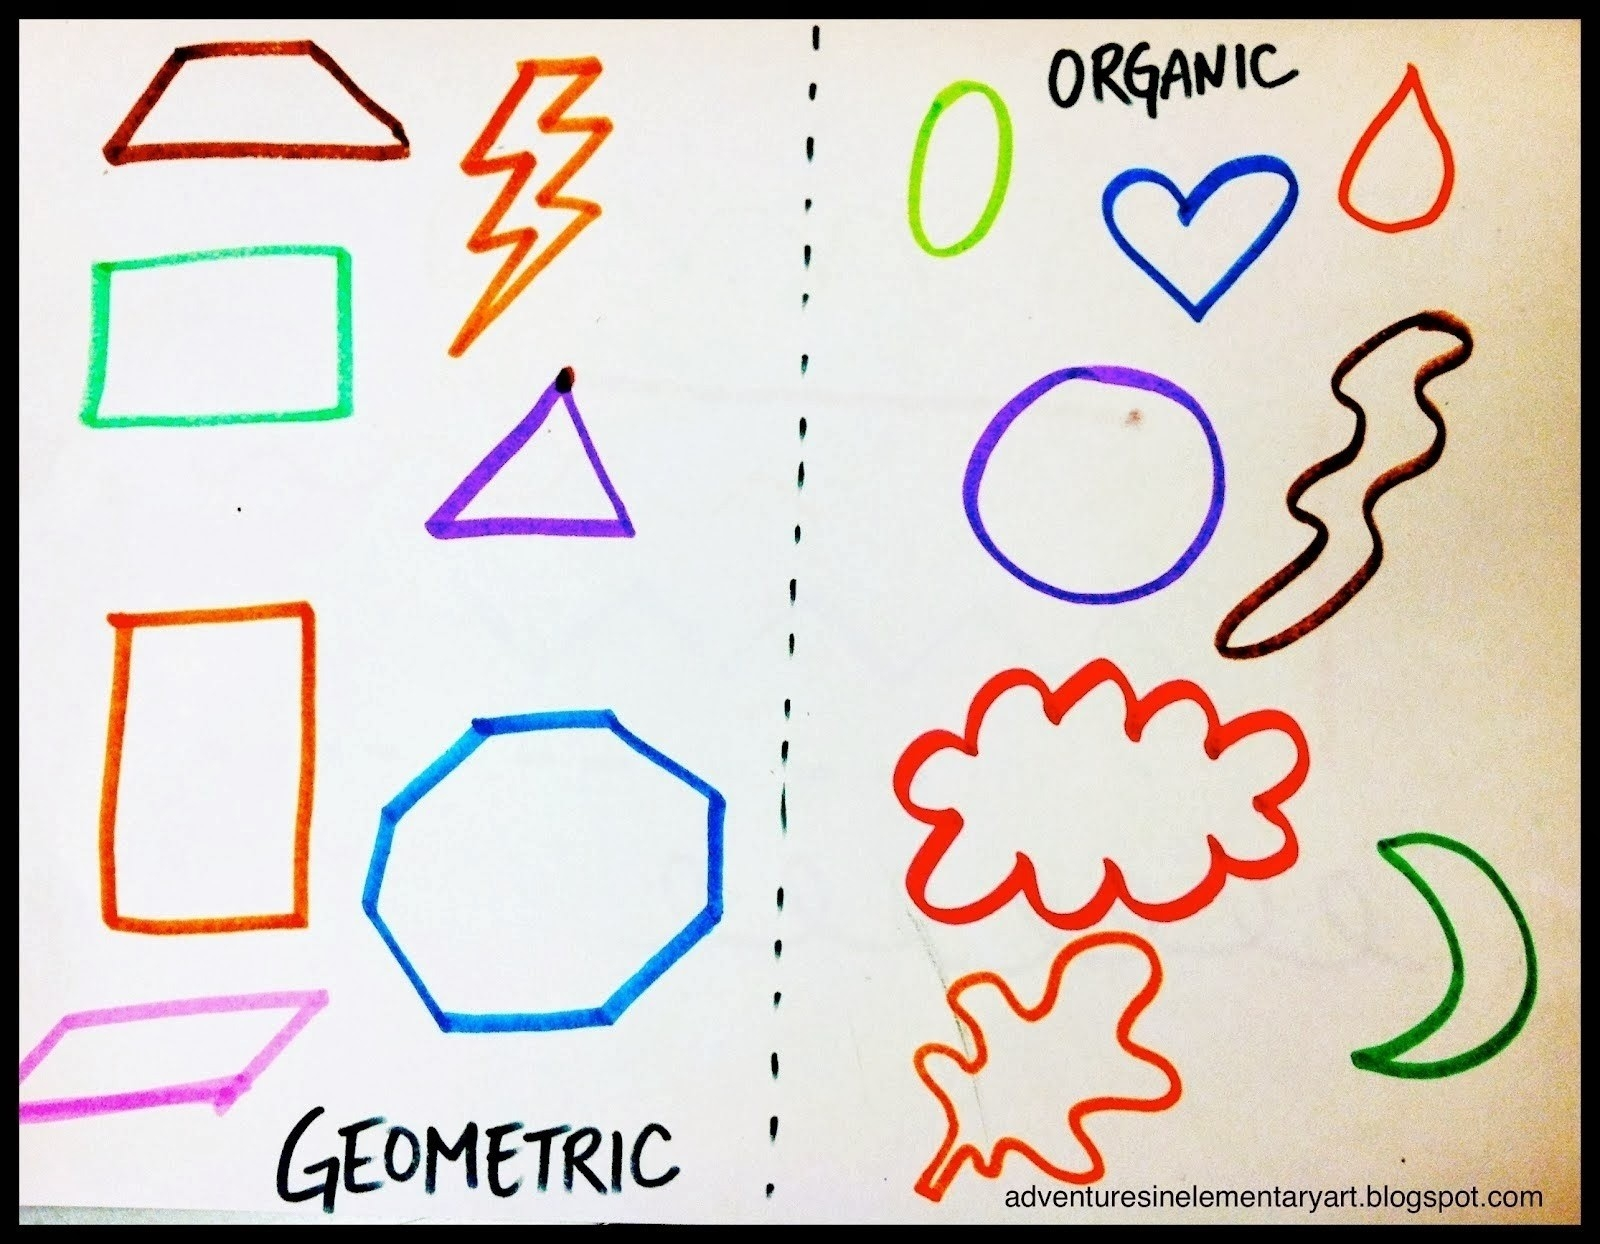 Www.lisbonlx/p/2018/03/geometric-And-Organic-S in Organic Shapes Definition 25001